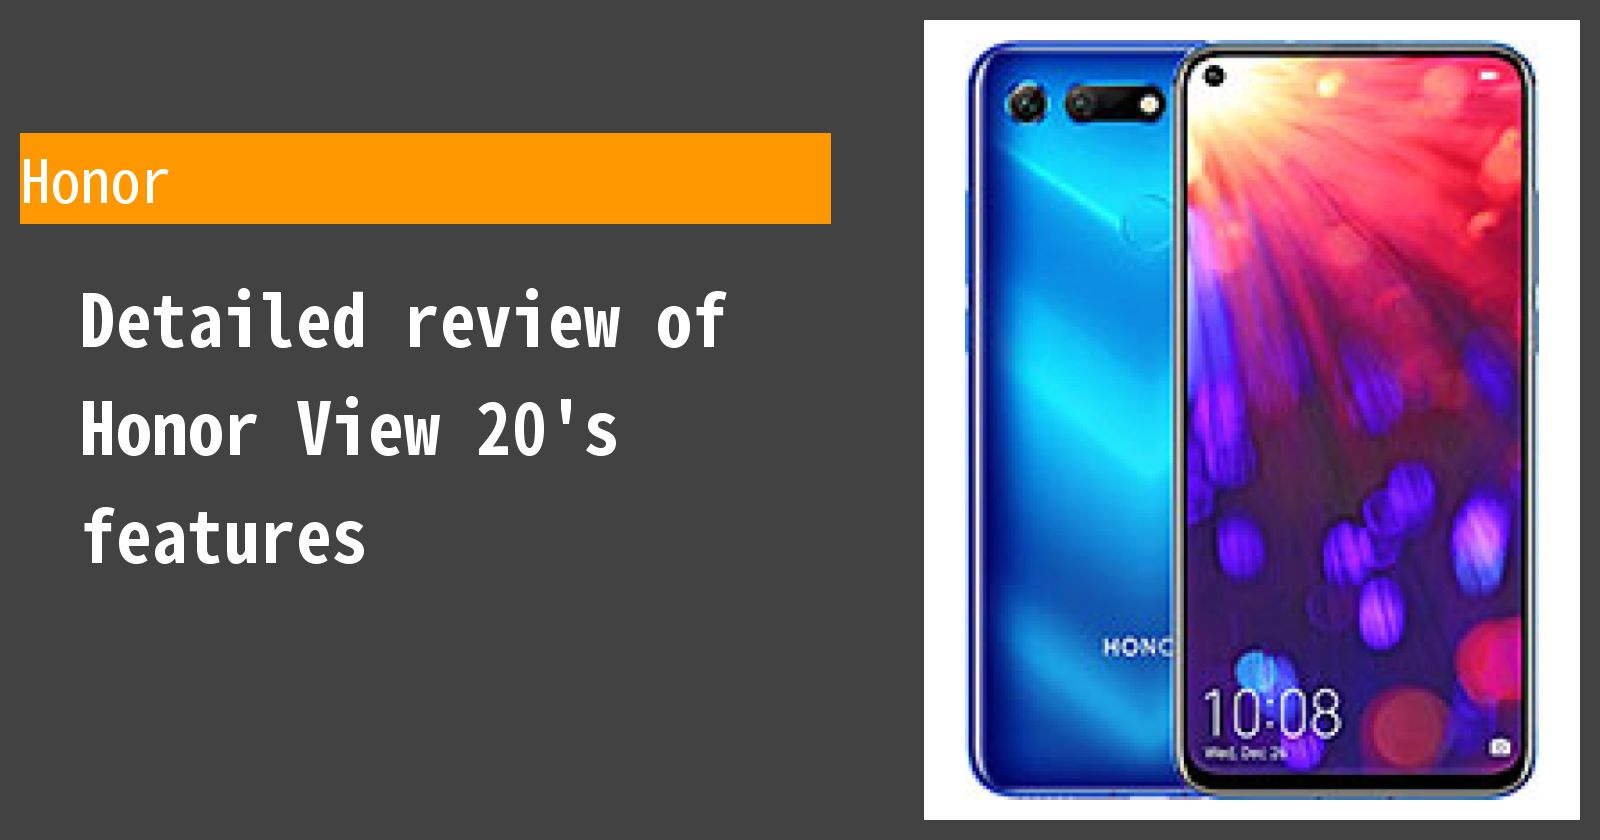 Detailed review of Honor View 20's features